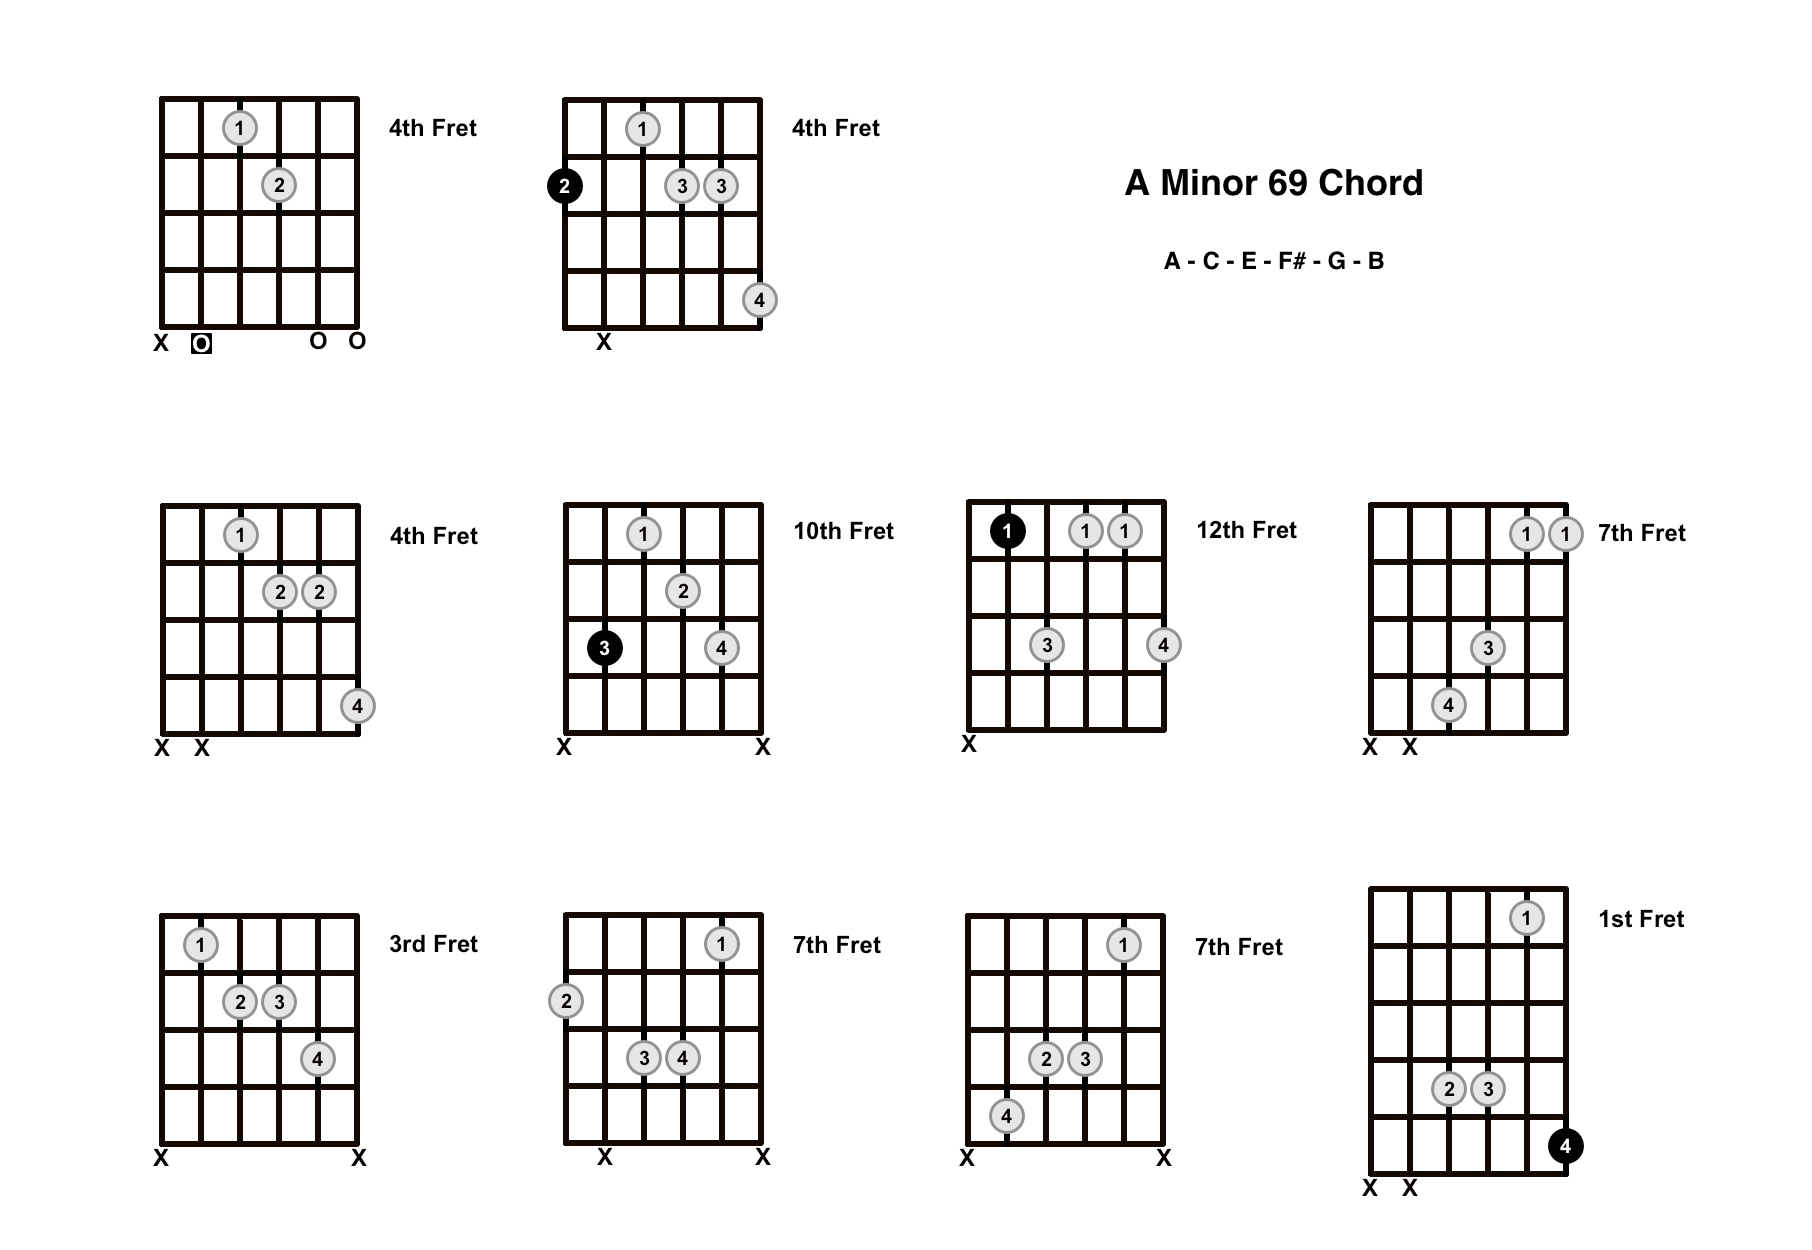 Am69 Chord On The Guitar (A Minor 69) – Diagrams, Finger Positions and Theory